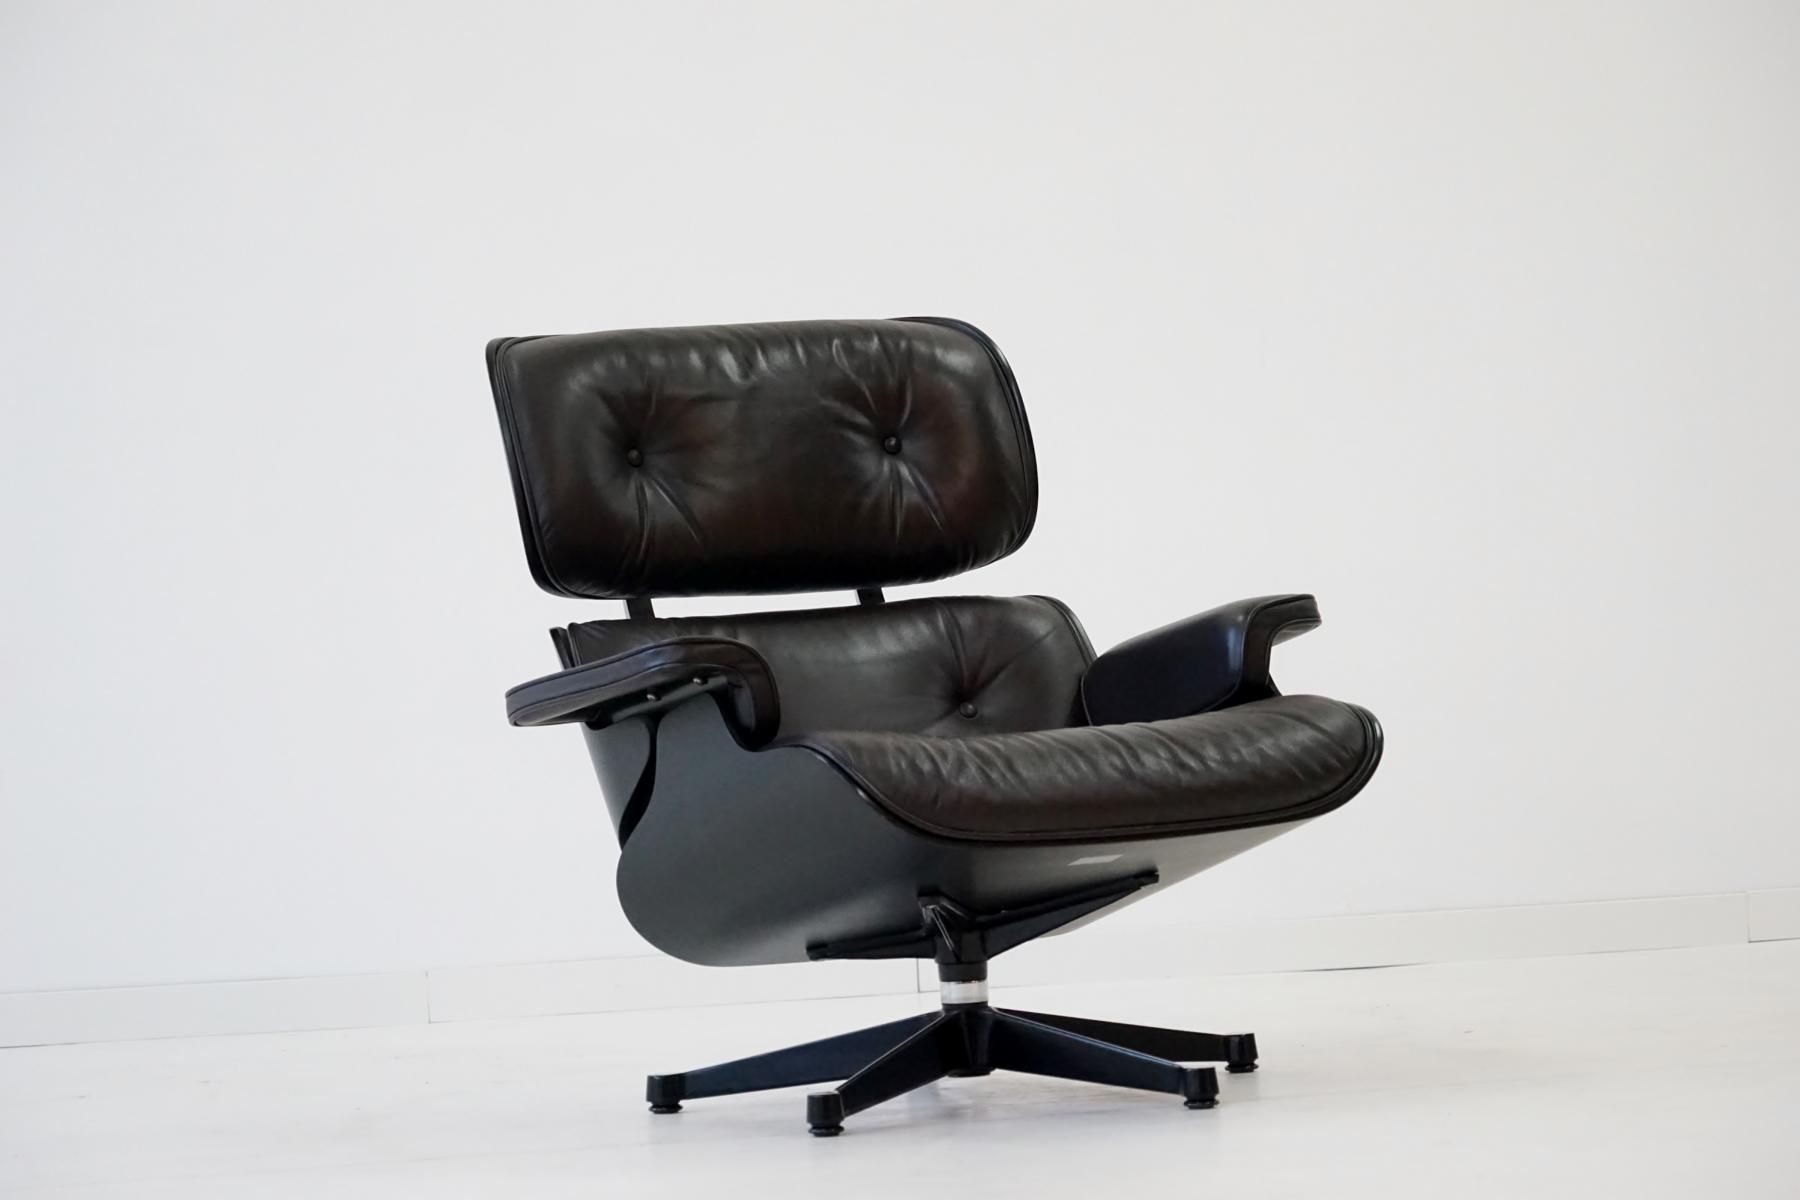 Sessel Charles Eames Sessel Von Charles And Ray Eames Für Vitra 1980er Bei